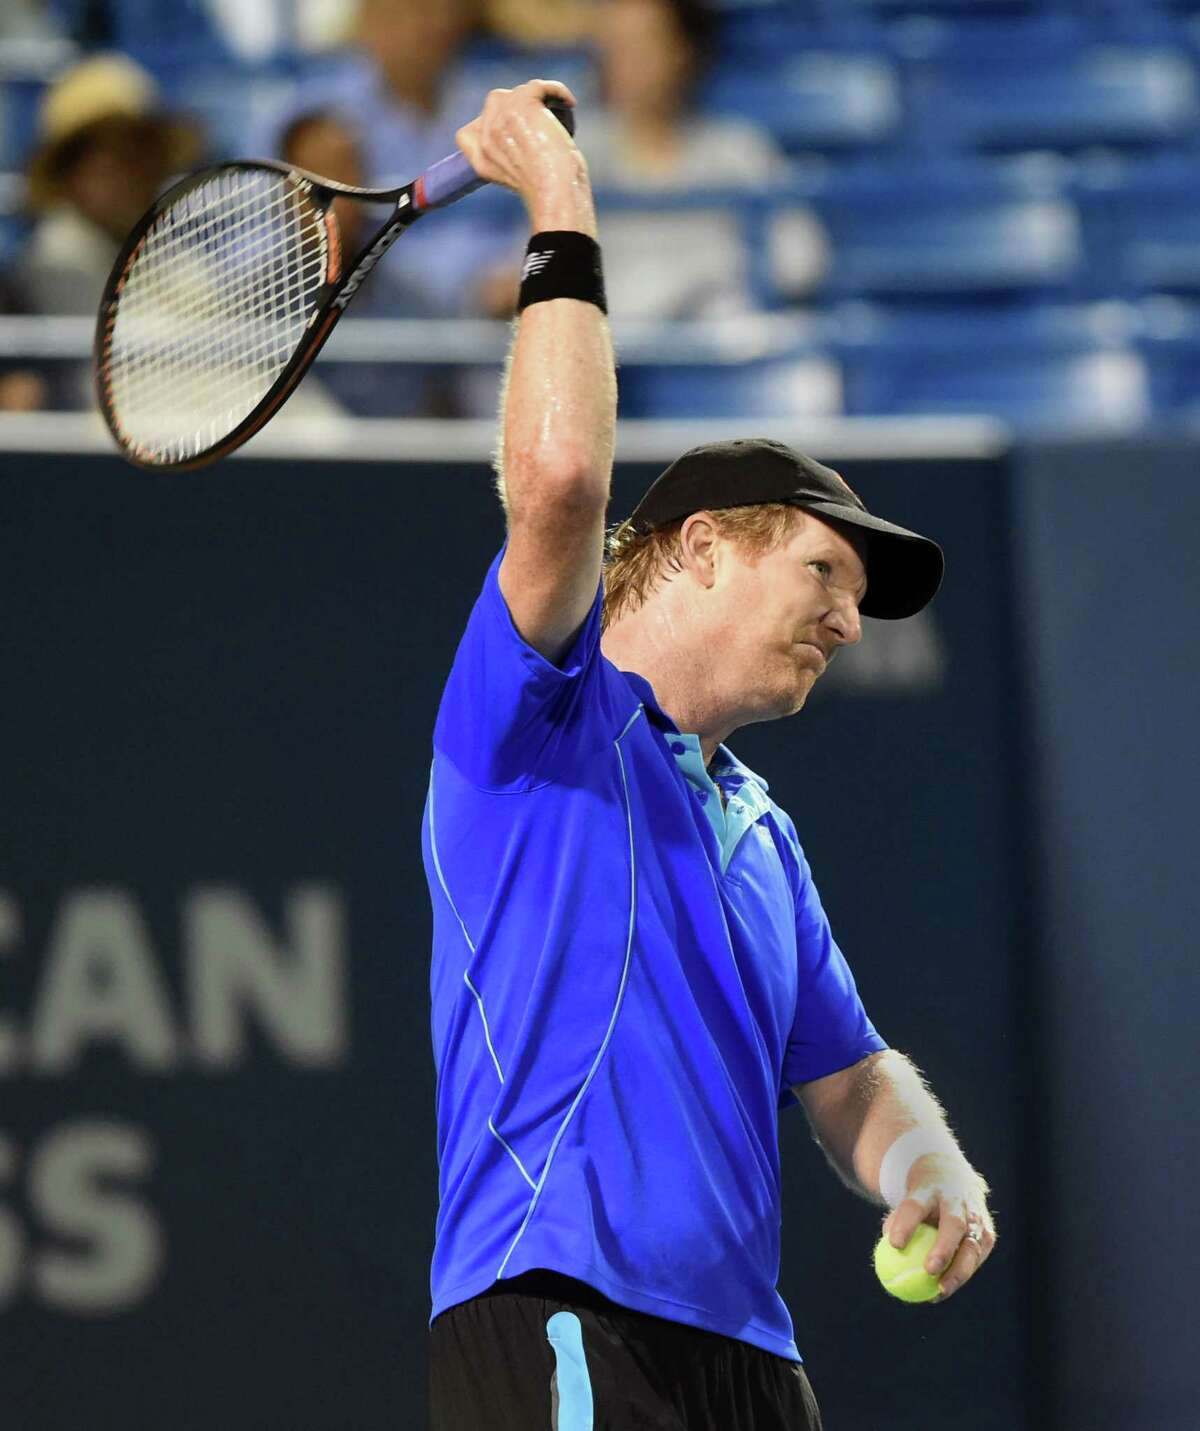 (Melanie Stengel - Register) Jim Courier \pretends to be angry as he challenges a call by a line judge during his match with James Blake 8/20.